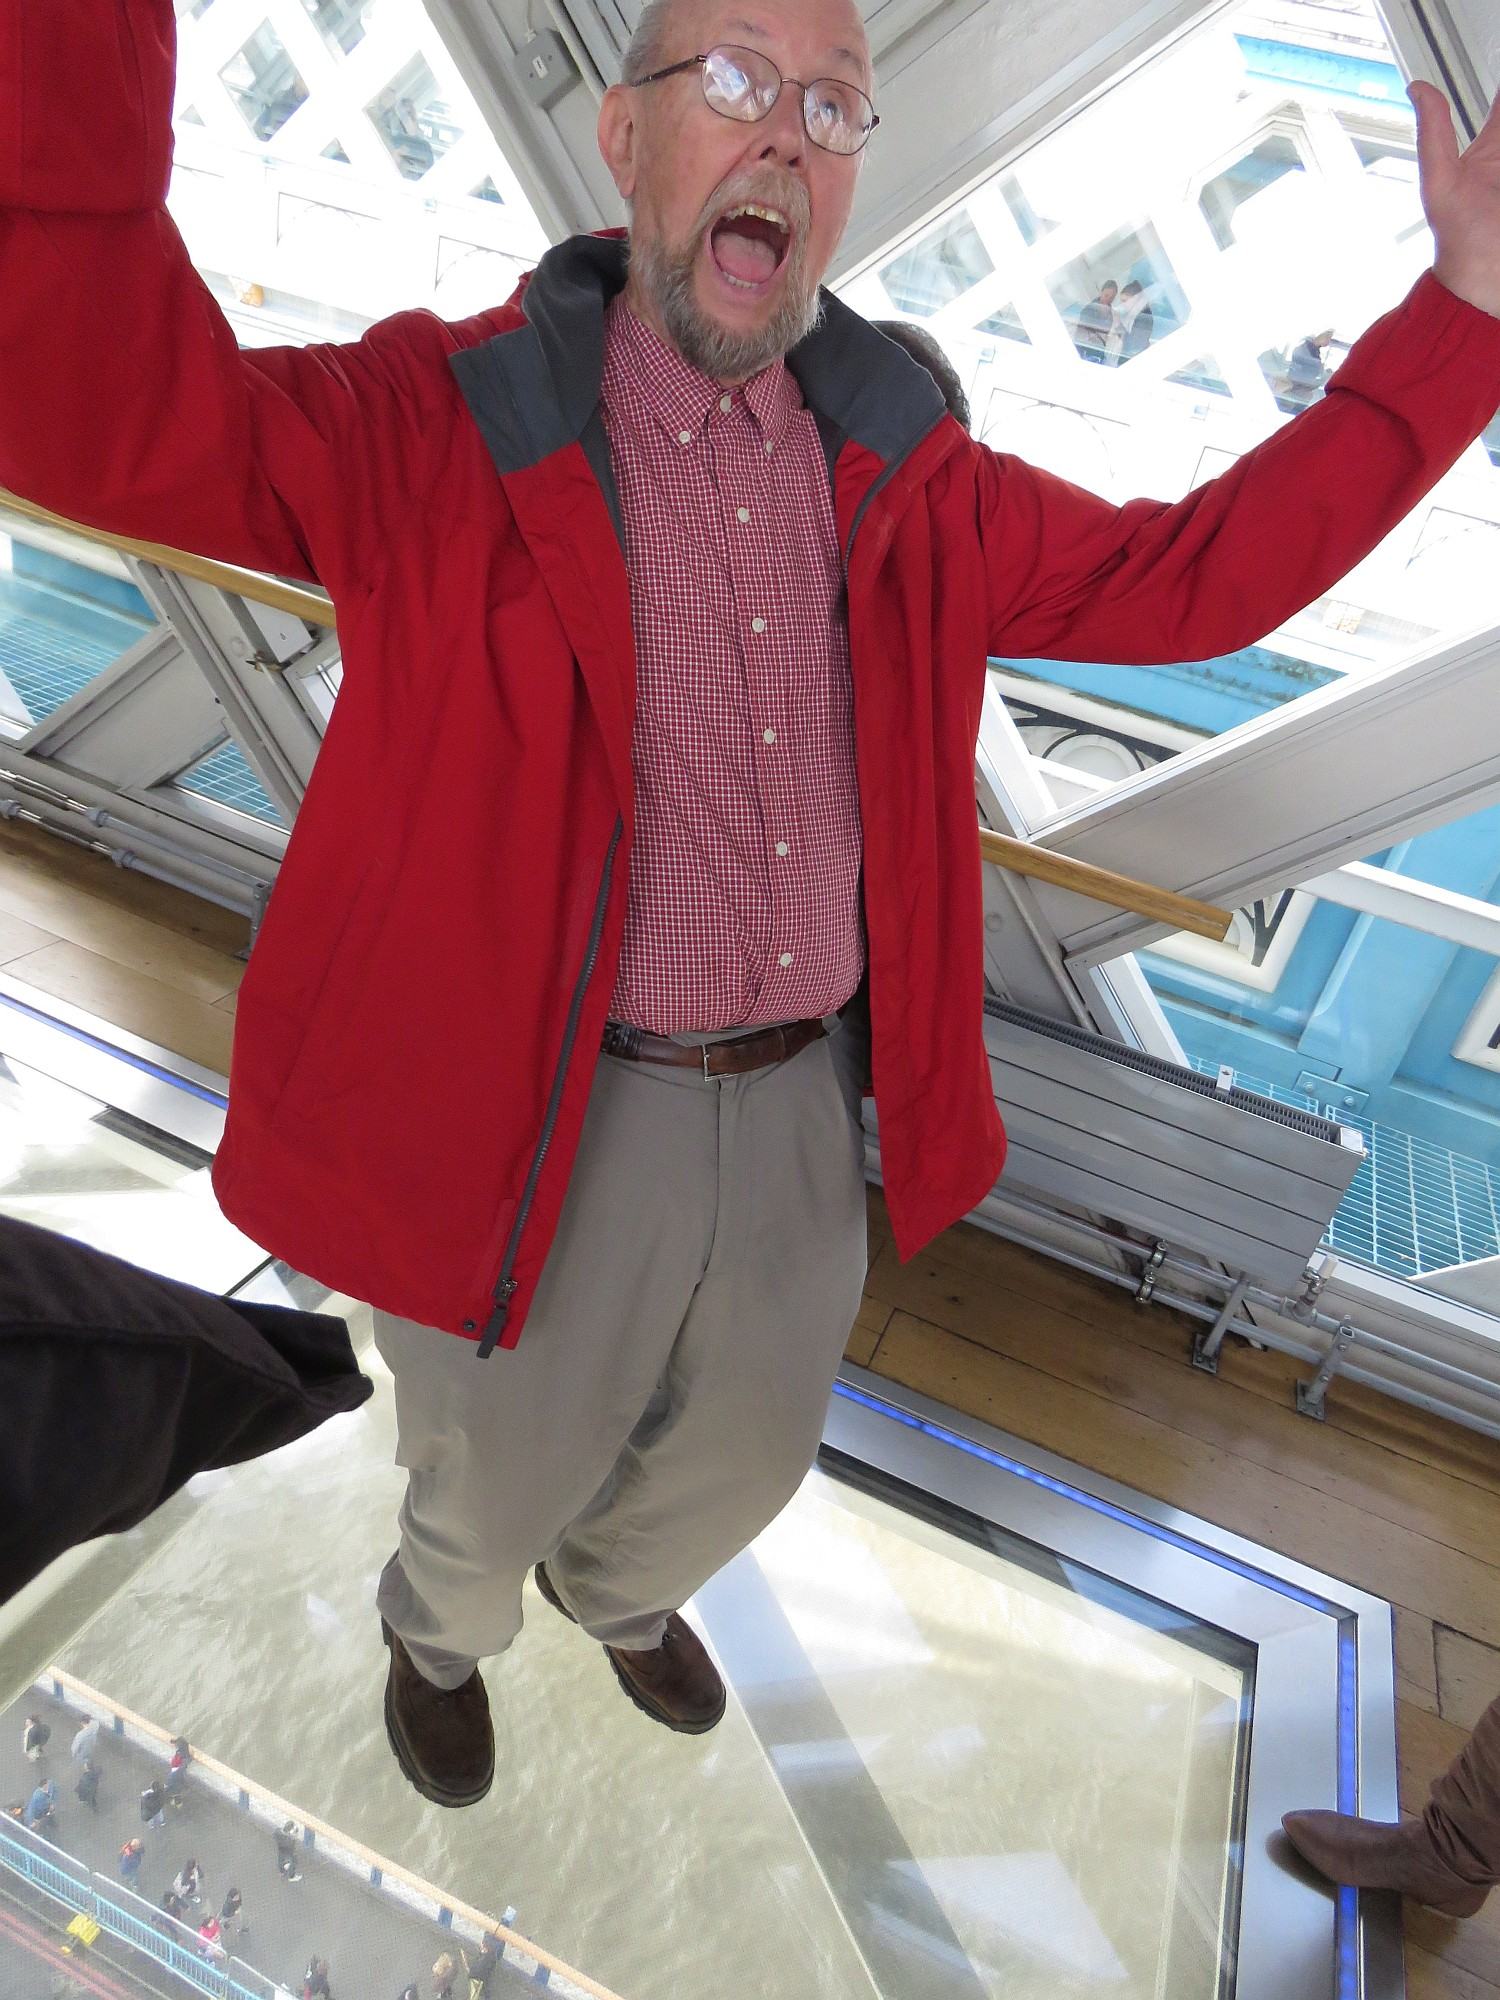 Ed standing on the glass floor of the pedestrian overpass on Tower Bridge.